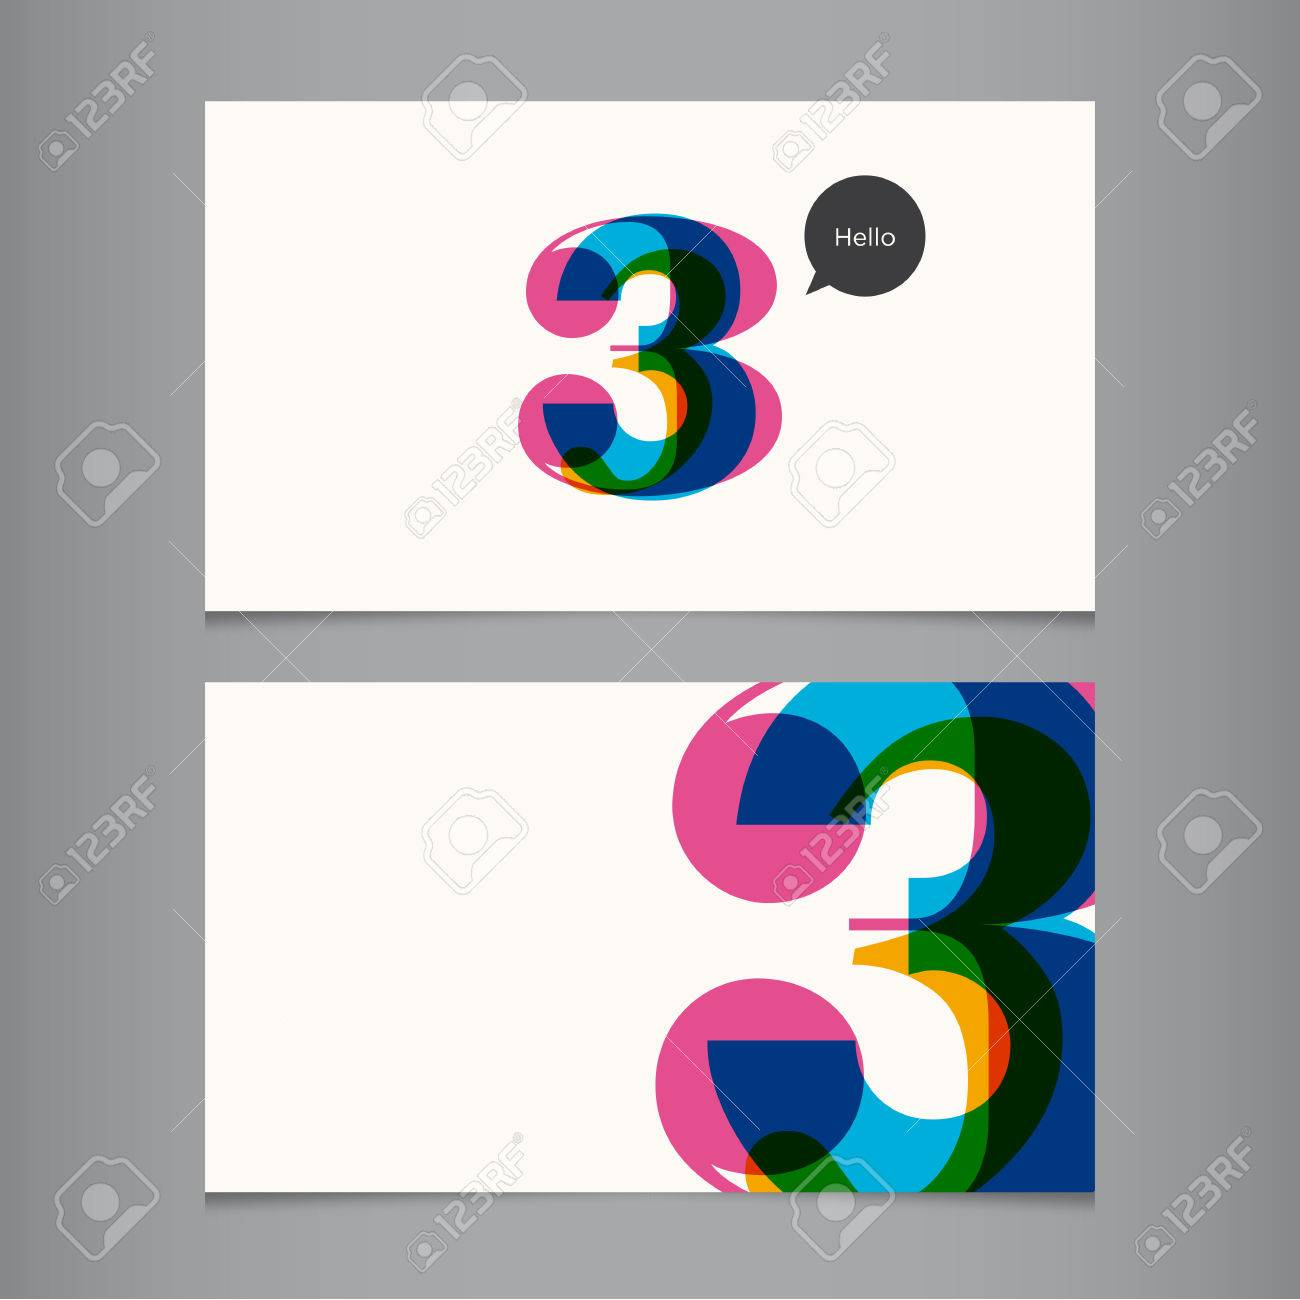 Business Card Template With Number, Color Editable Ideal For ...